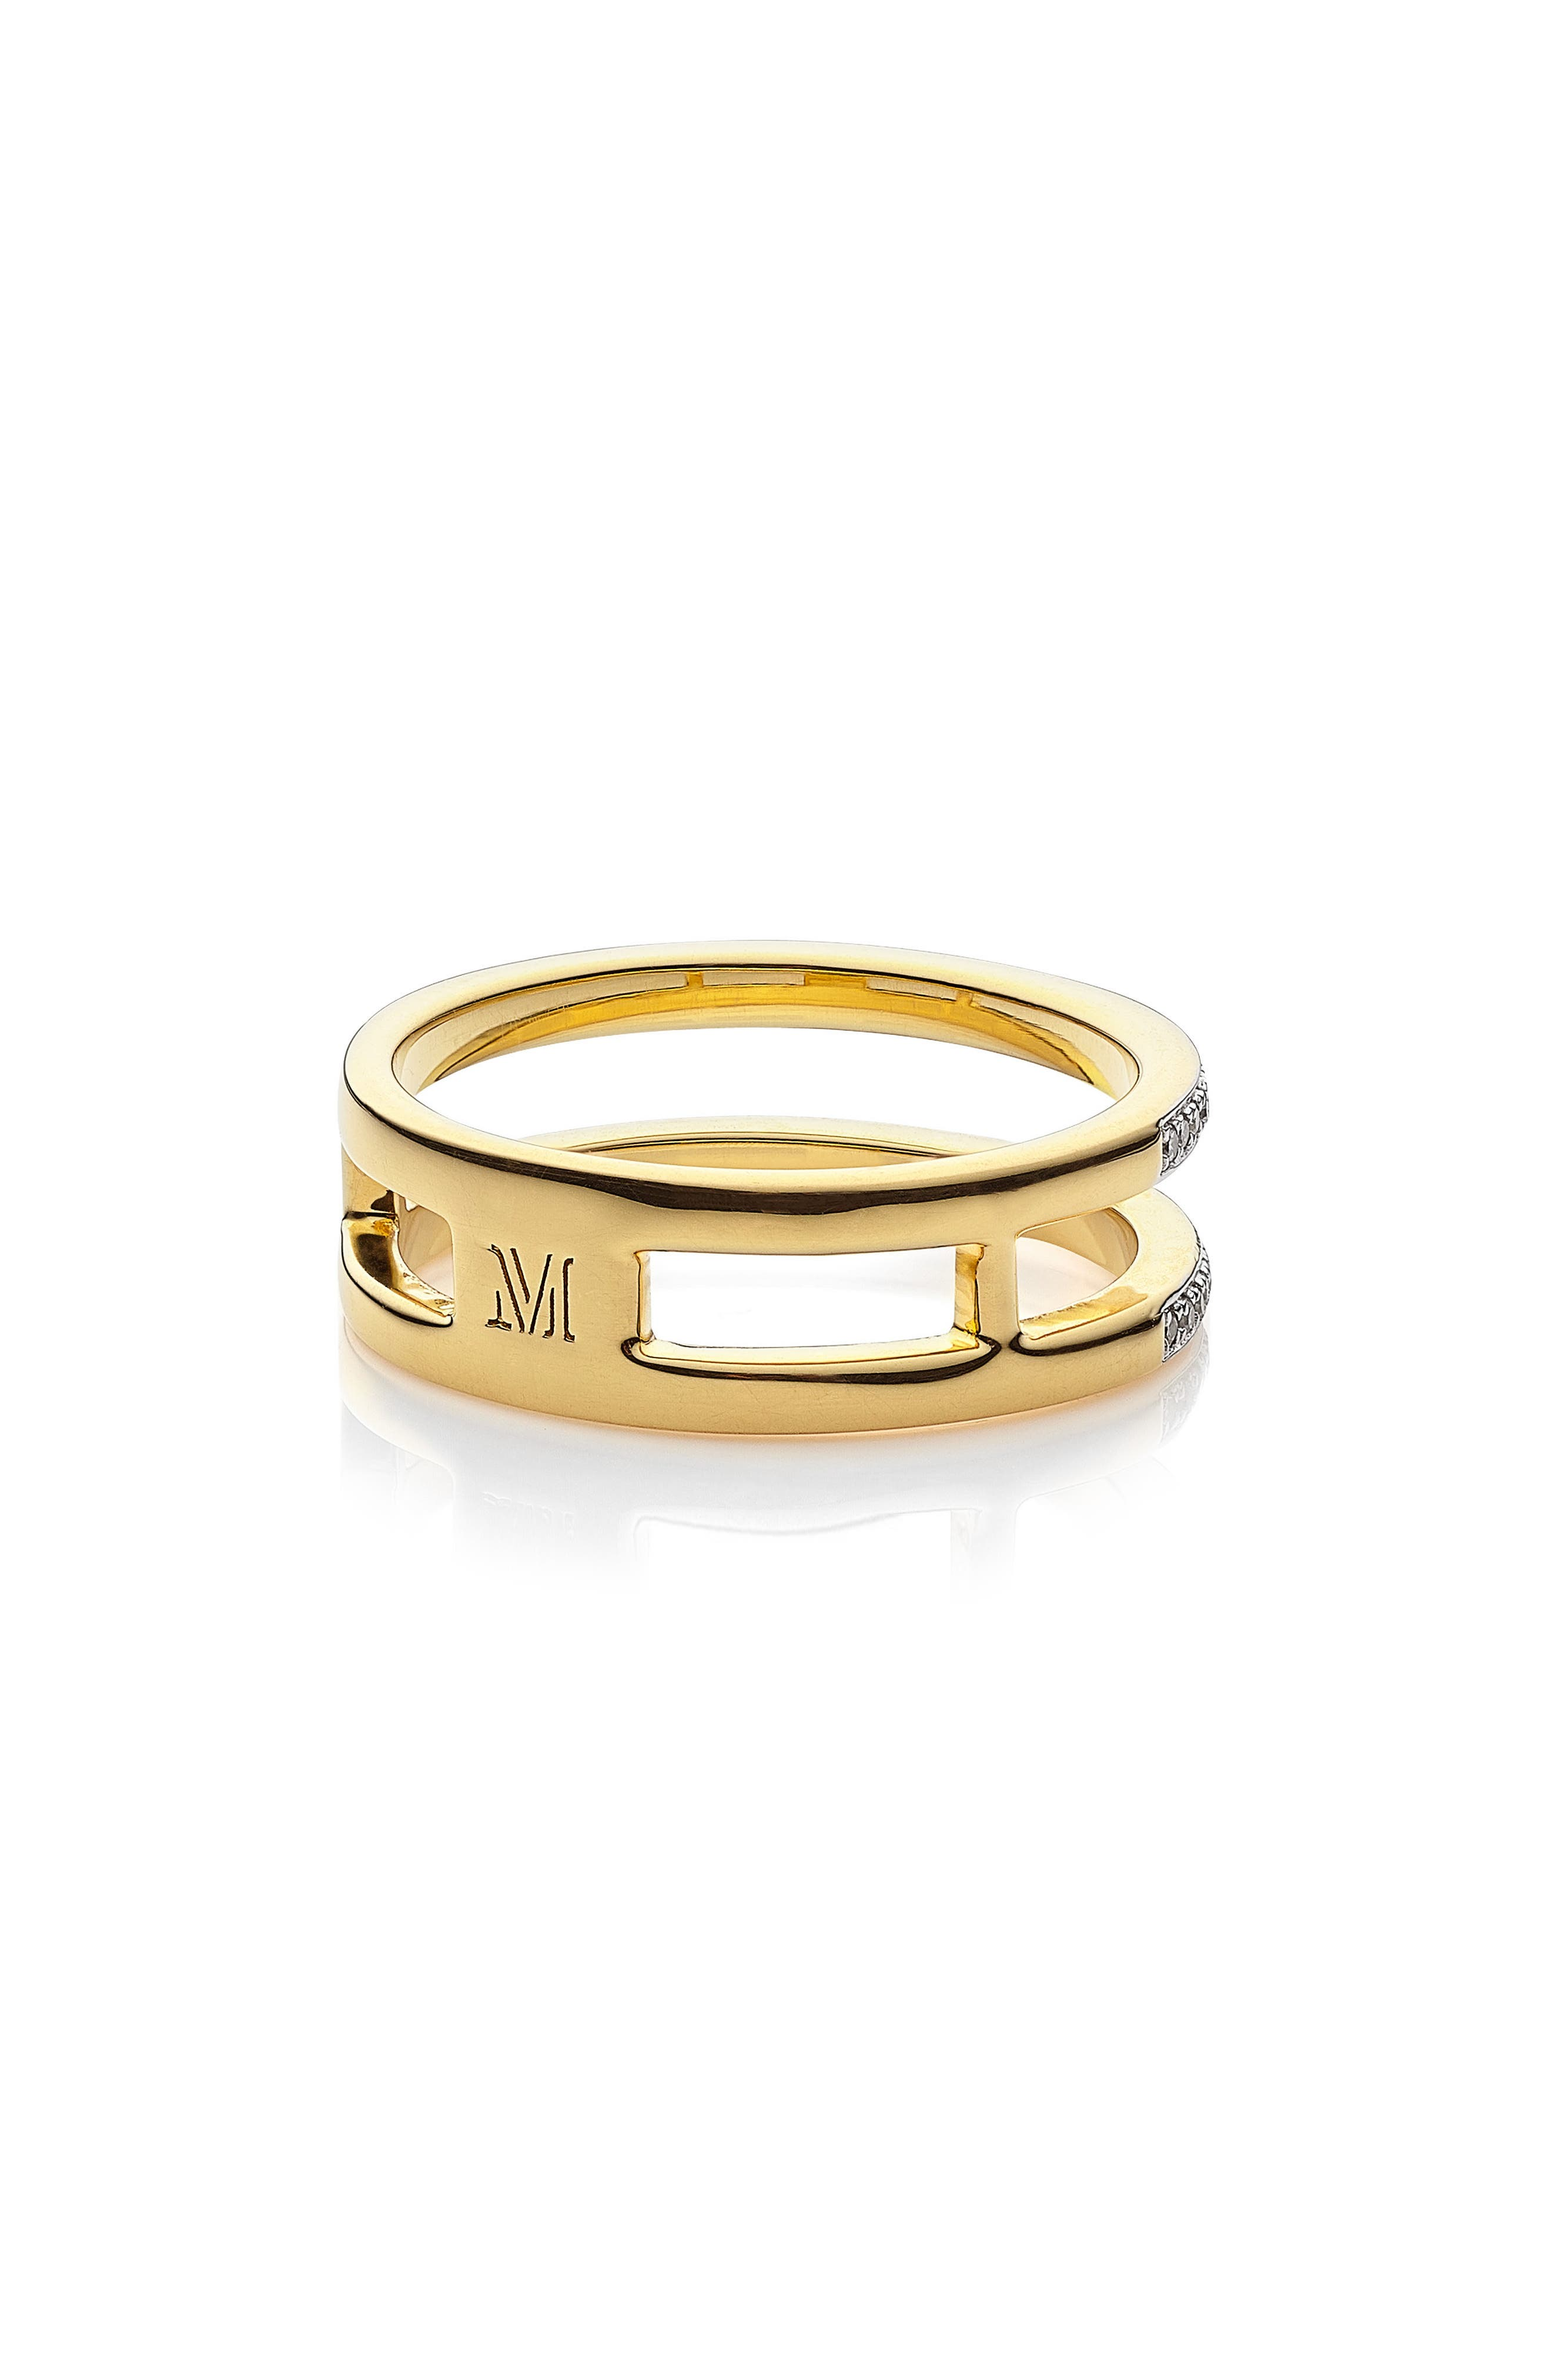 Skinny Double Band Diamond Ring,                             Alternate thumbnail 2, color,                             Yellow Gold